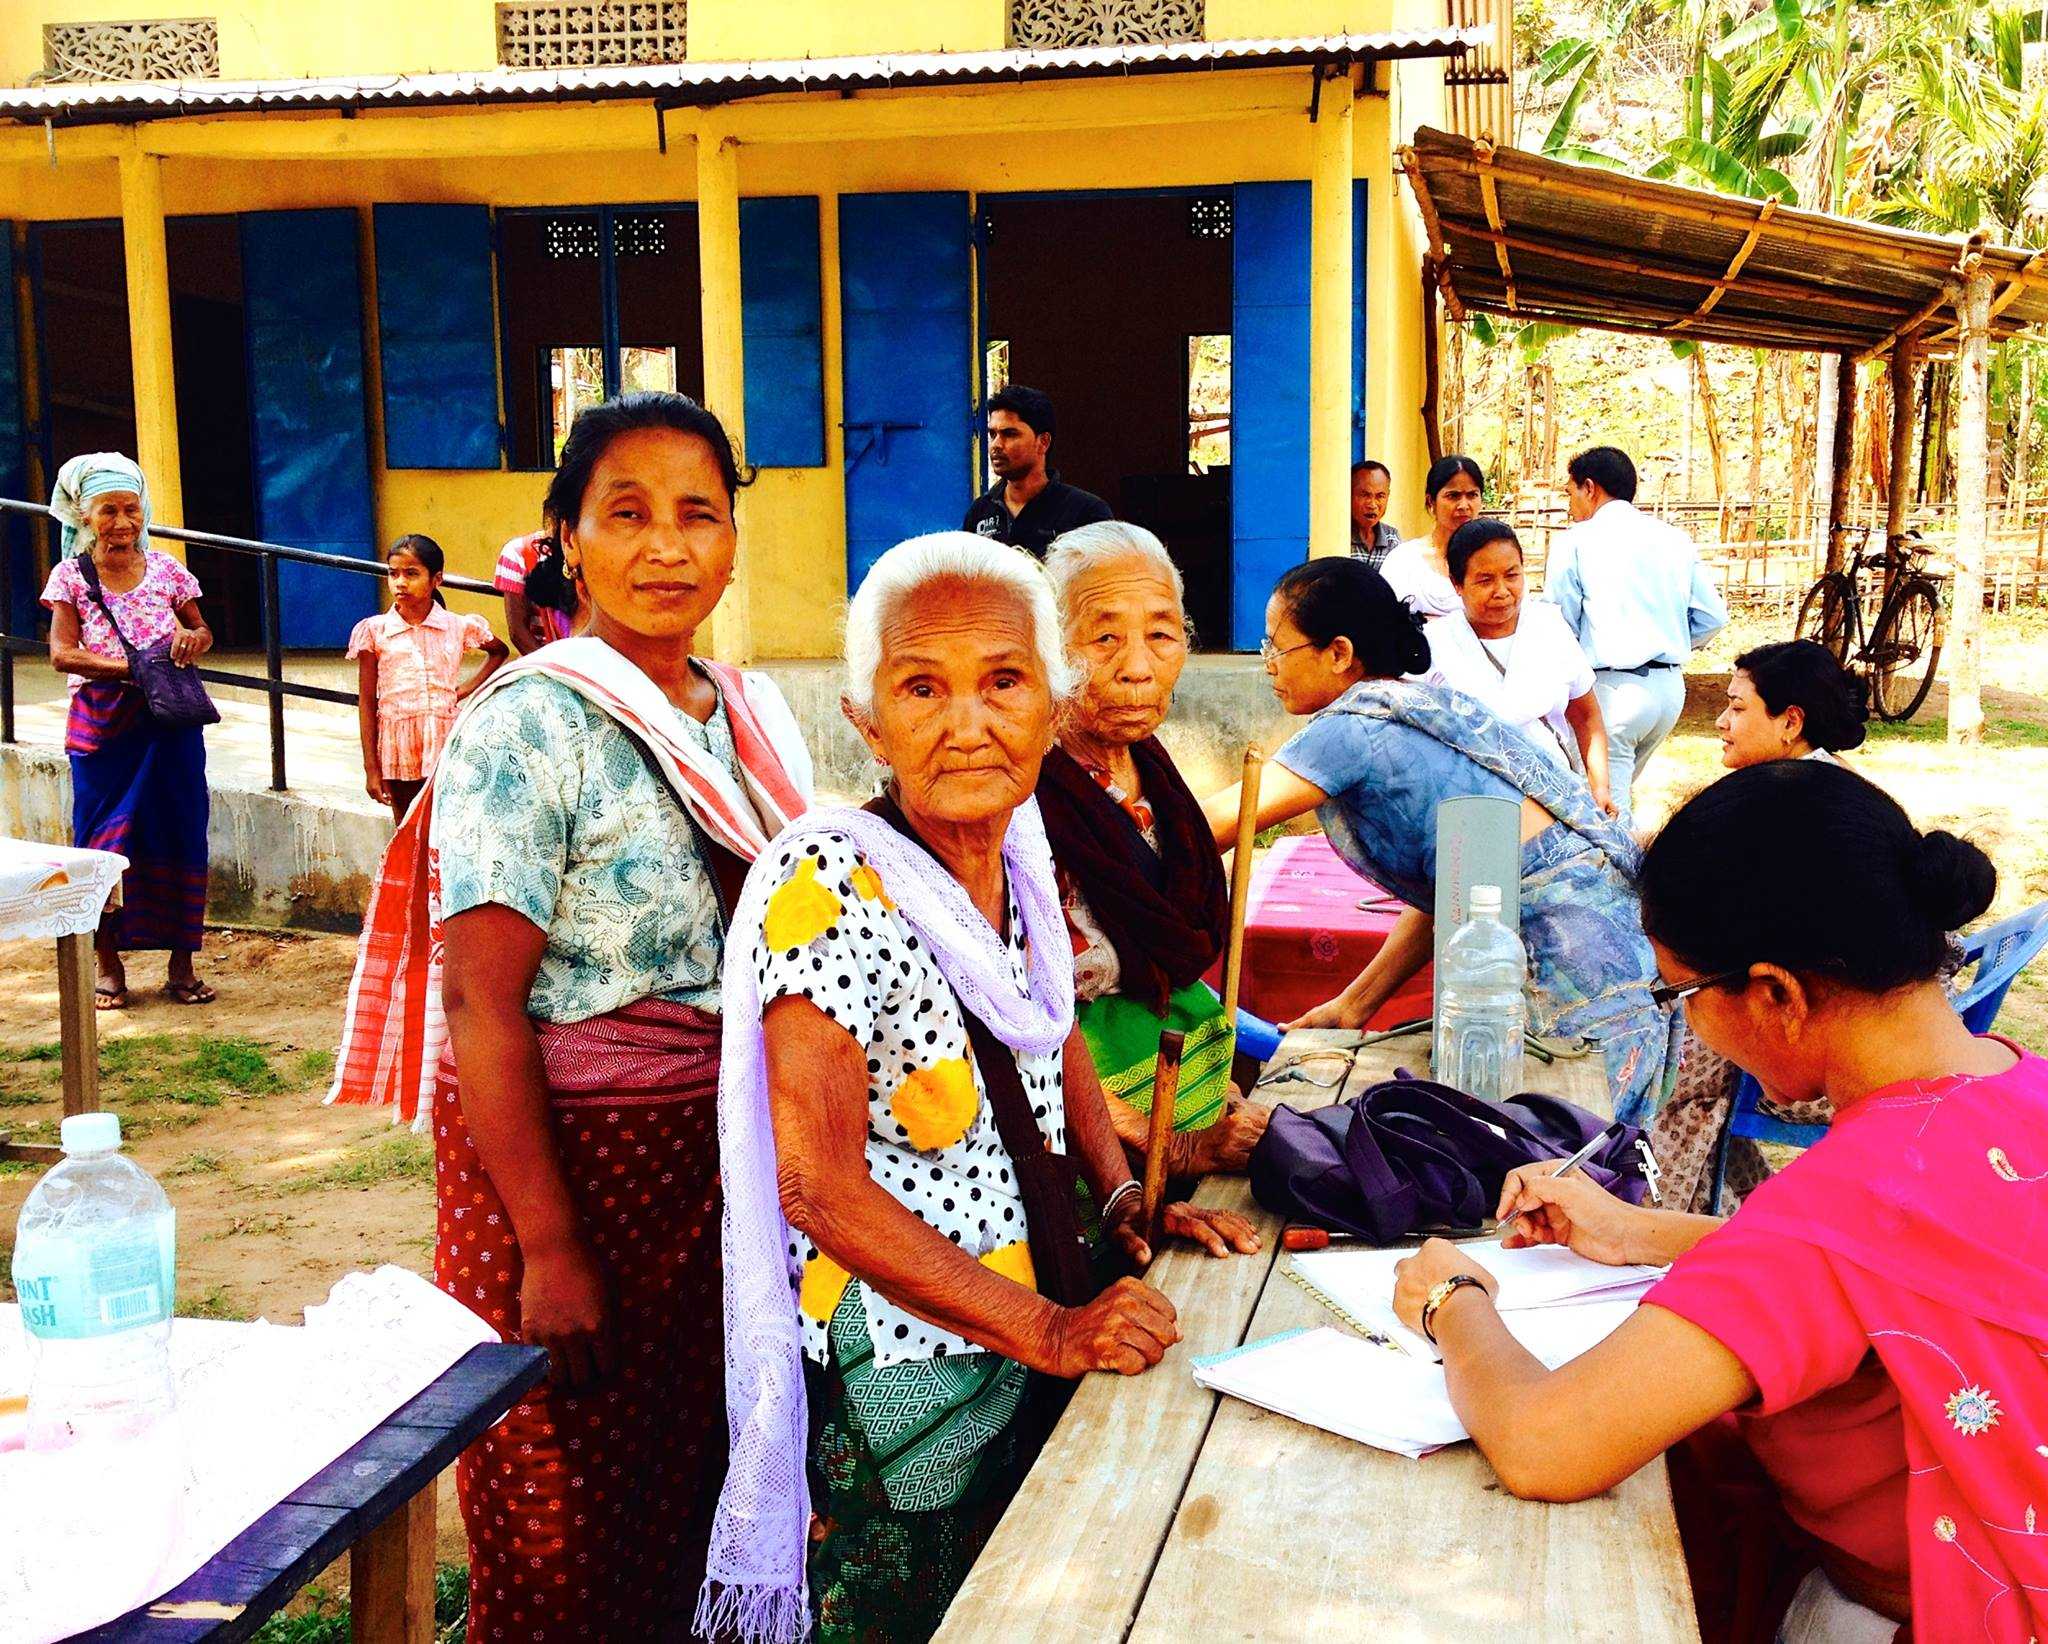 4B-Satribari Christian Mission Hospital, adding wings to reach out to rural Assam through Re 1 program for the needy. Program so far has more than 60,000 patrons.